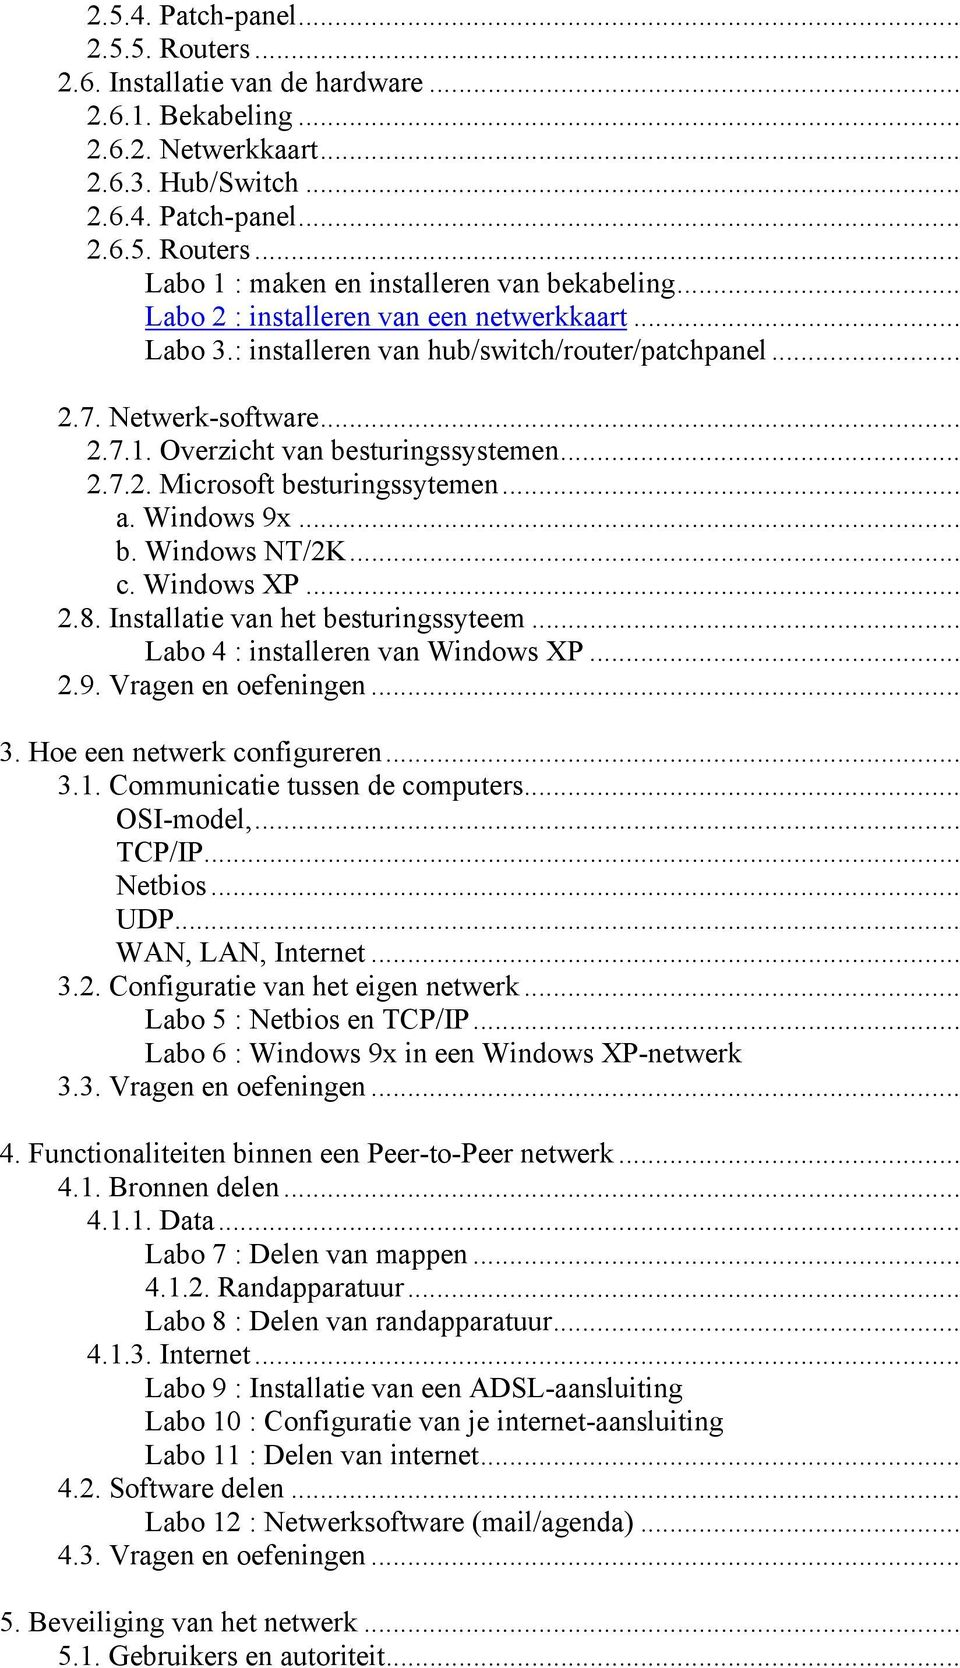 .. a. Windows 9x... b. Windows NT/2K... c. Windows XP... 2.8. Installatie van het besturingssyteem... Labo 4 : installeren van Windows XP... 2.9. Vragen en oefeningen... 3.